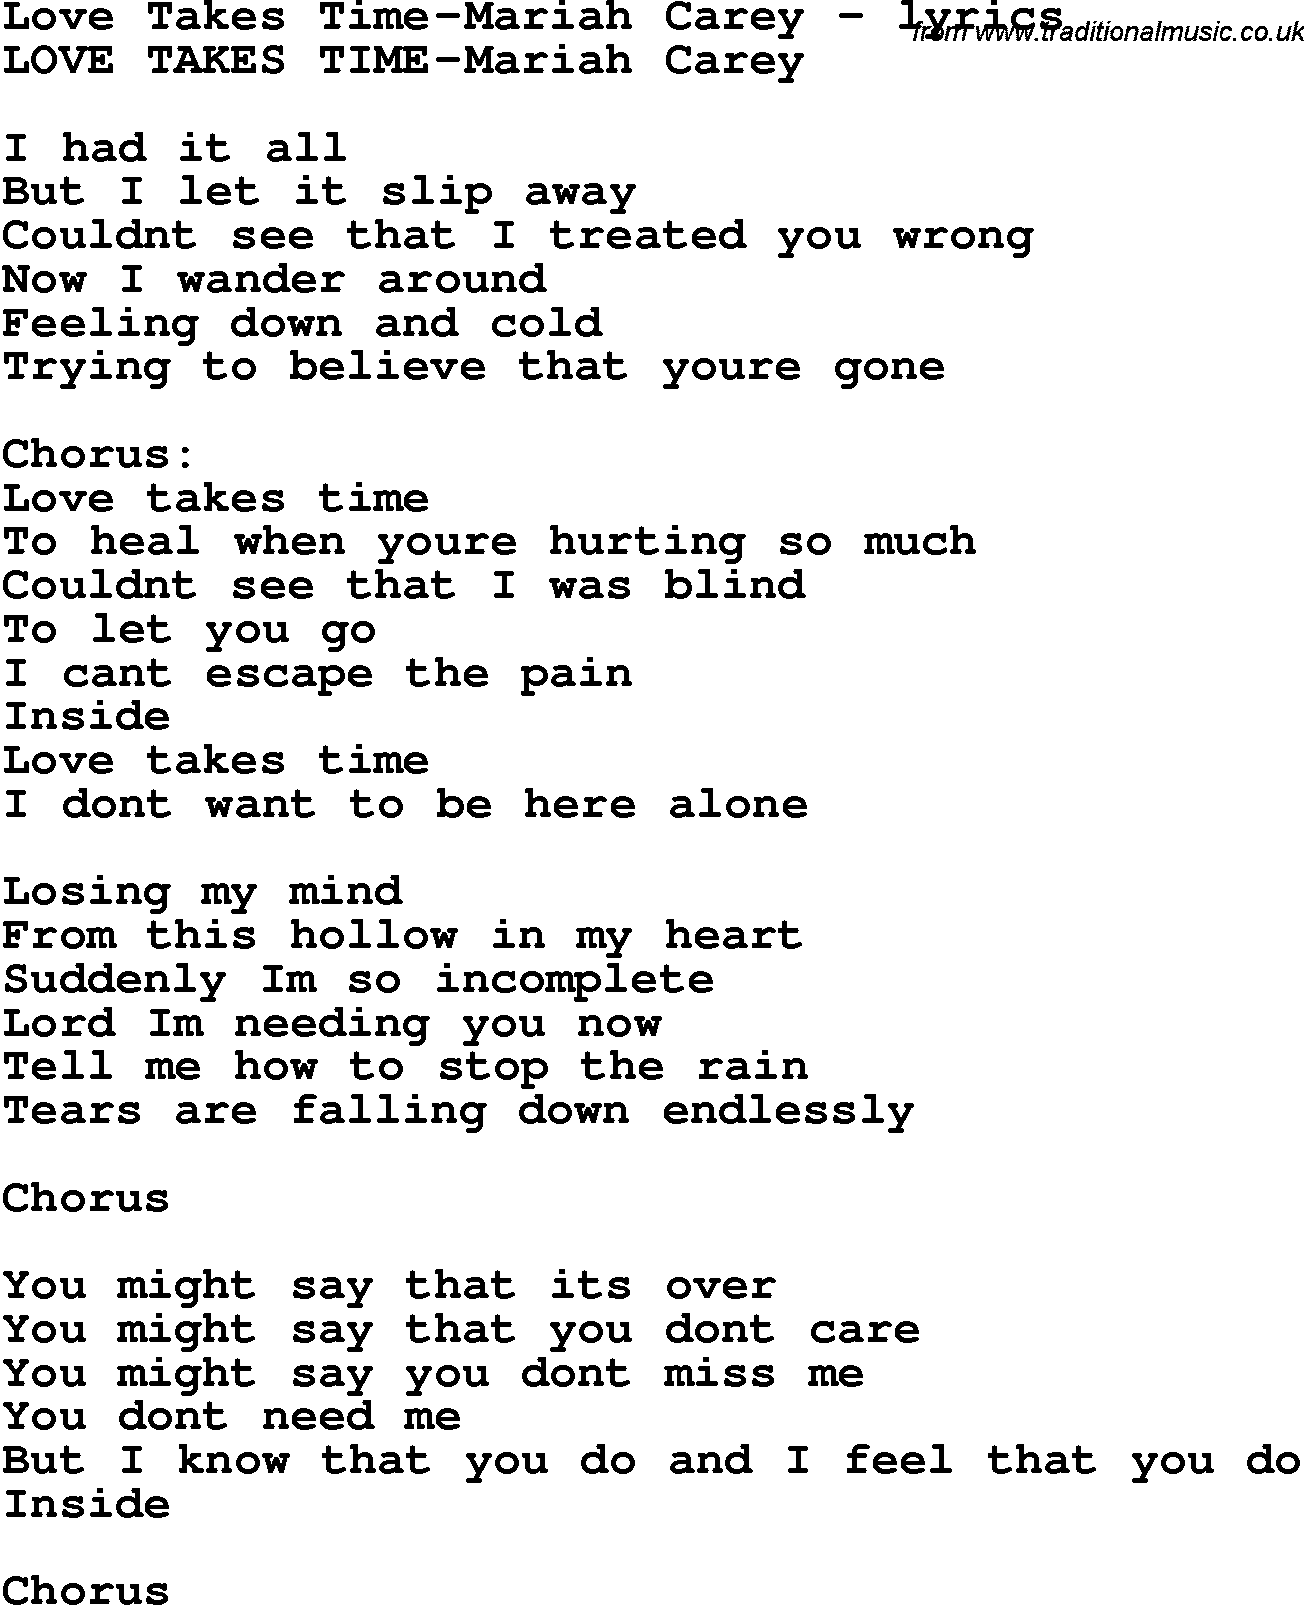 Love story mariah lyrics